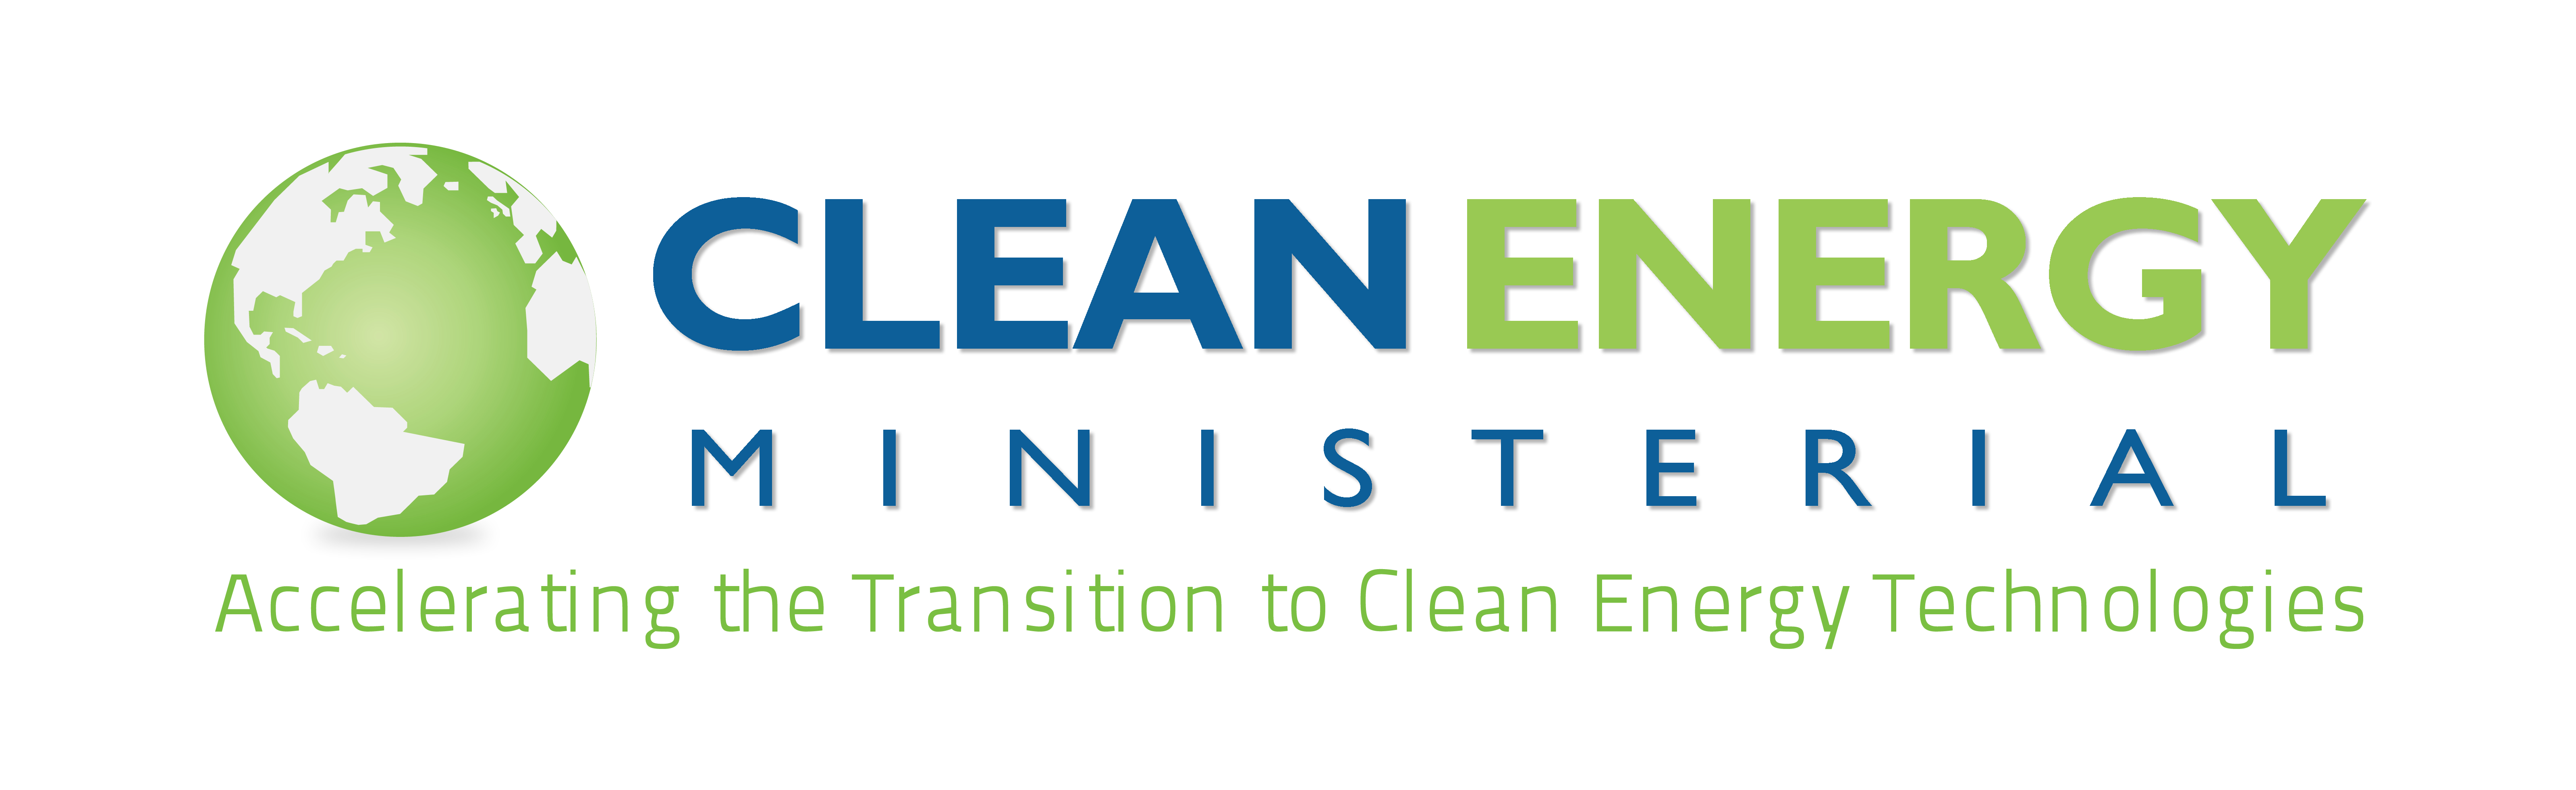 Clean Energy Ministerial logo